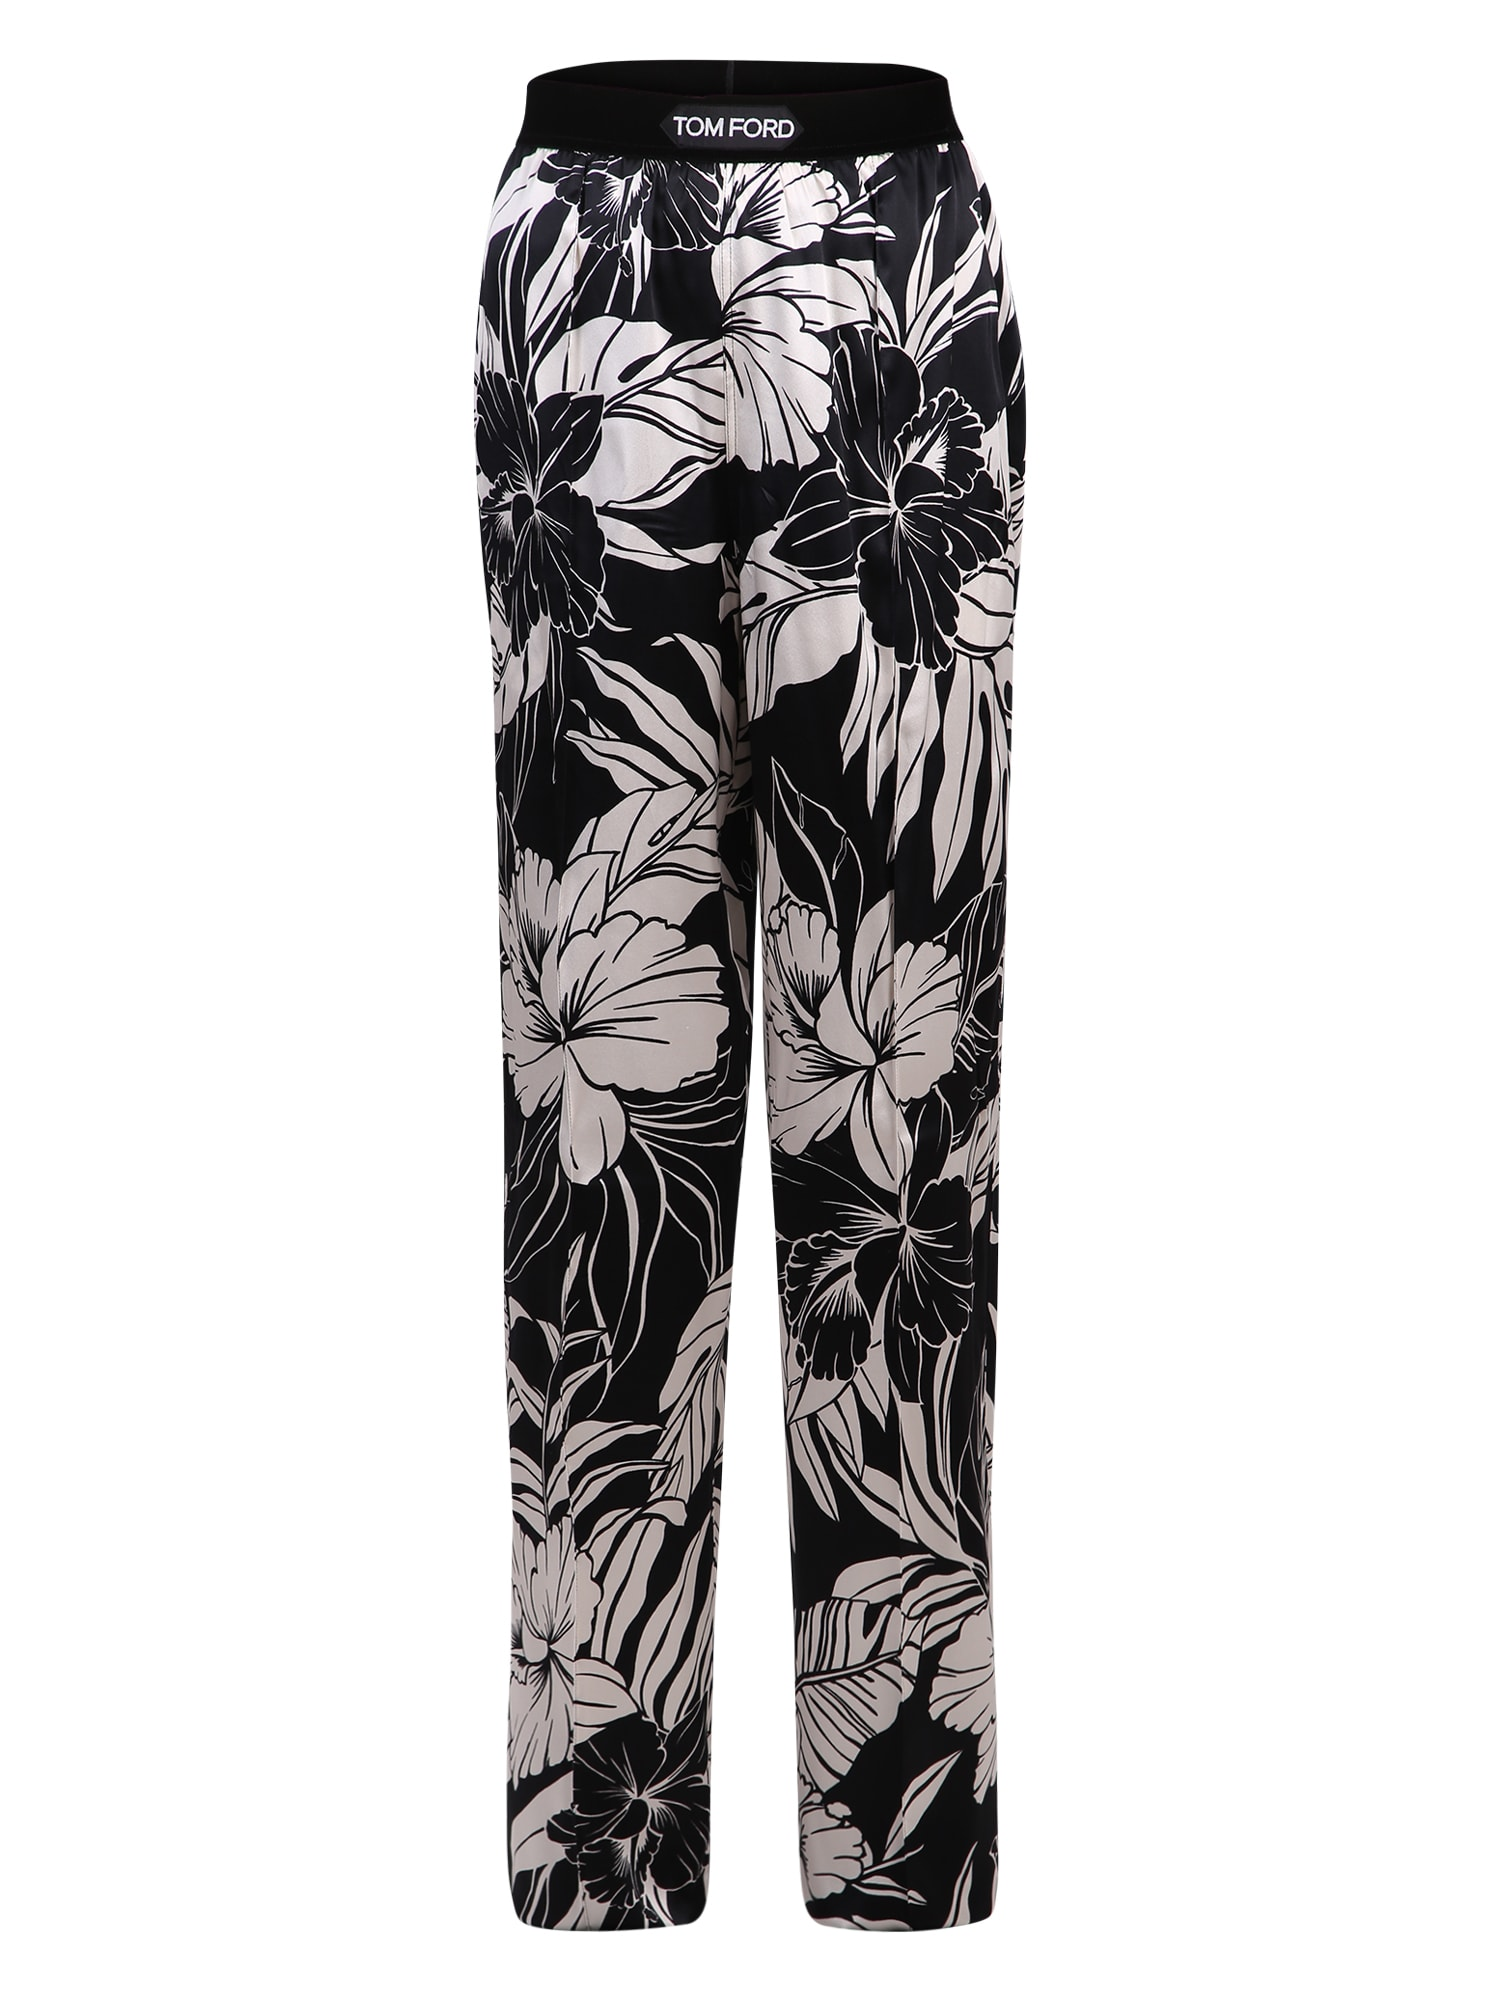 Tom Ford Silks PRINTED TROUSERS